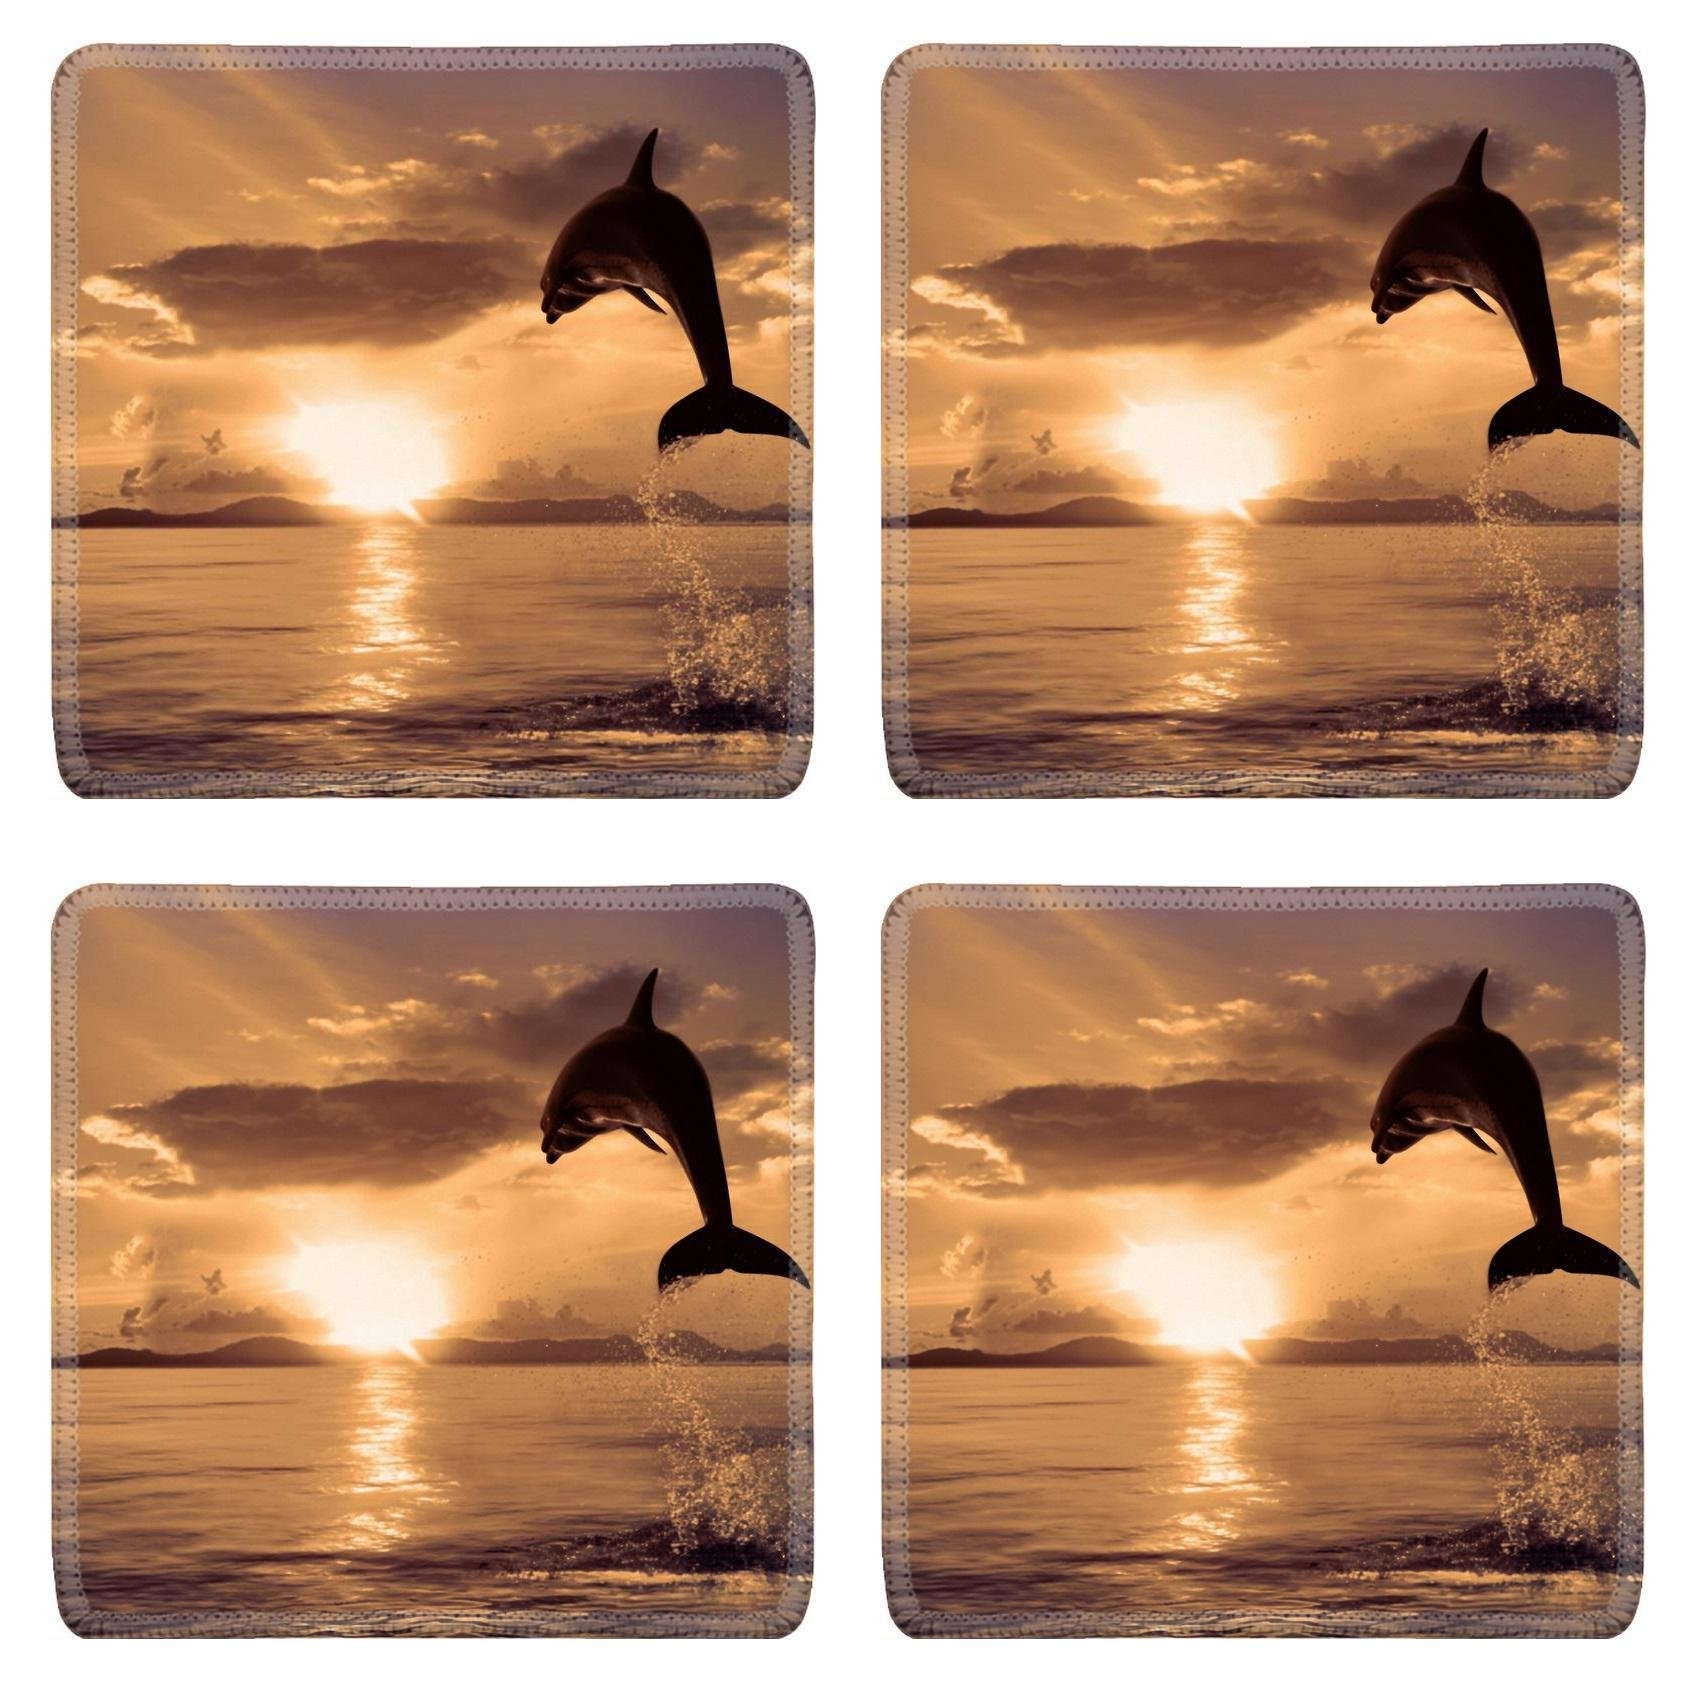 Custom Coaster Set of 4 ,MSD Unique Printed Coaster Cup Mat Design for sea ocean dolphin animal water nature mammal life blue wildlife marine fun sunset wild splash